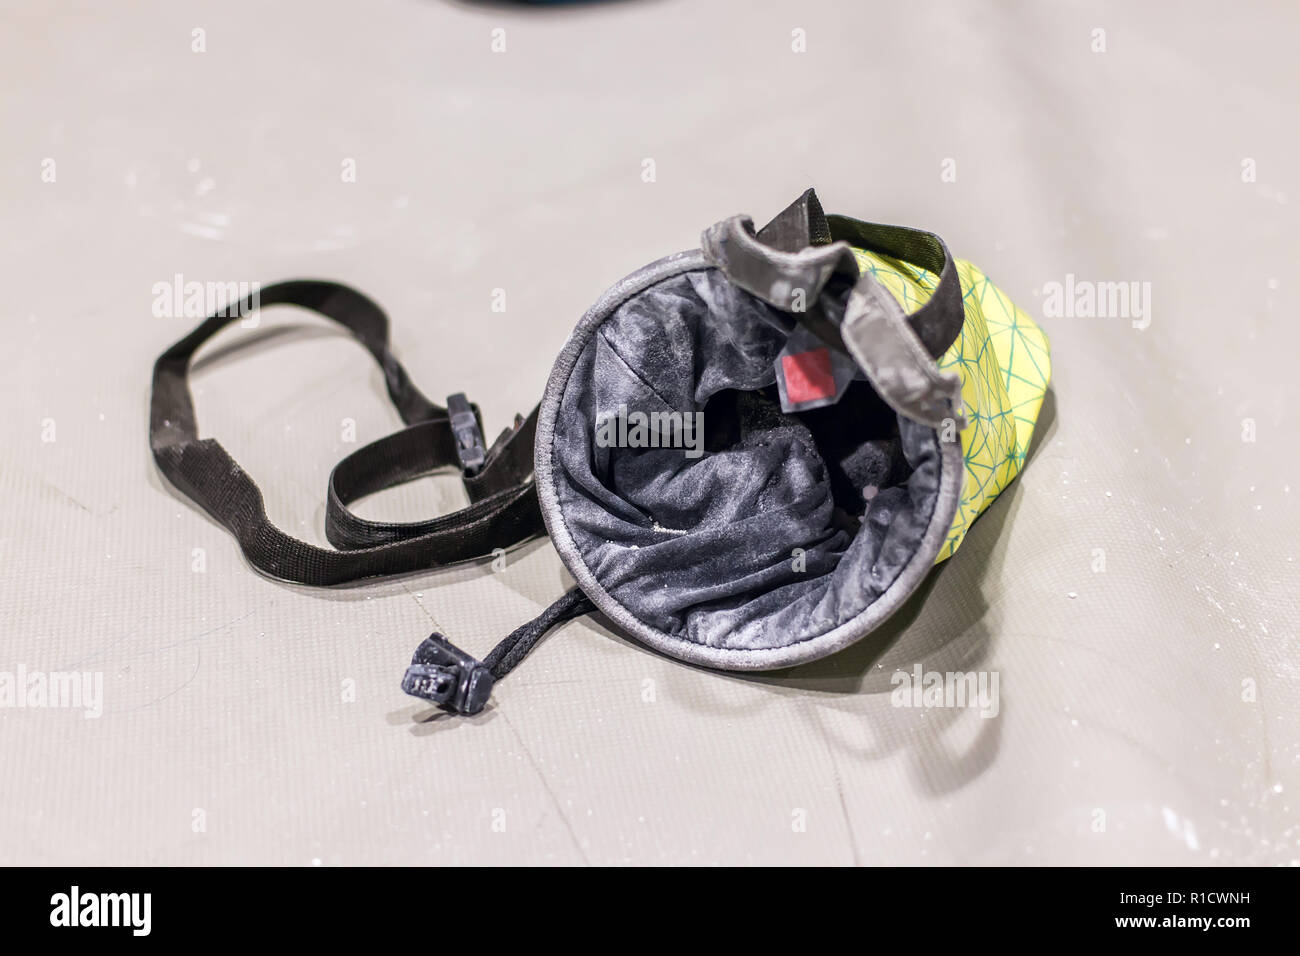 climbing bag for magnesia lies on the mat isolate - Stock Image